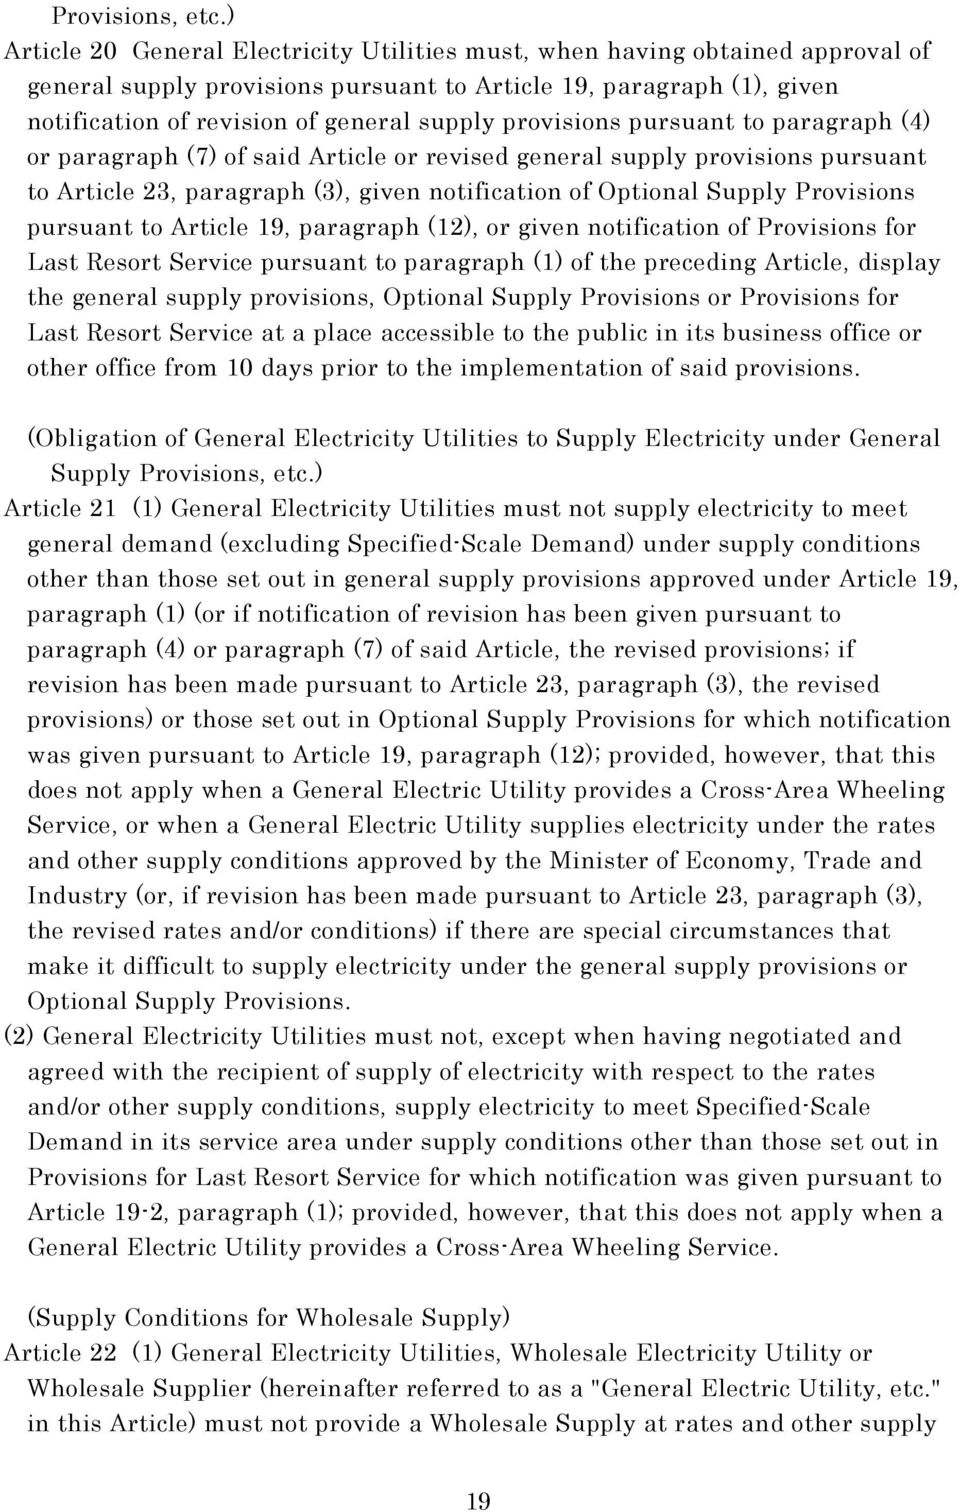 provisions pursuant to paragraph (4) or paragraph (7) of said Article or revised general supply provisions pursuant to Article 23, paragraph (3), given notification of Optional Supply Provisions